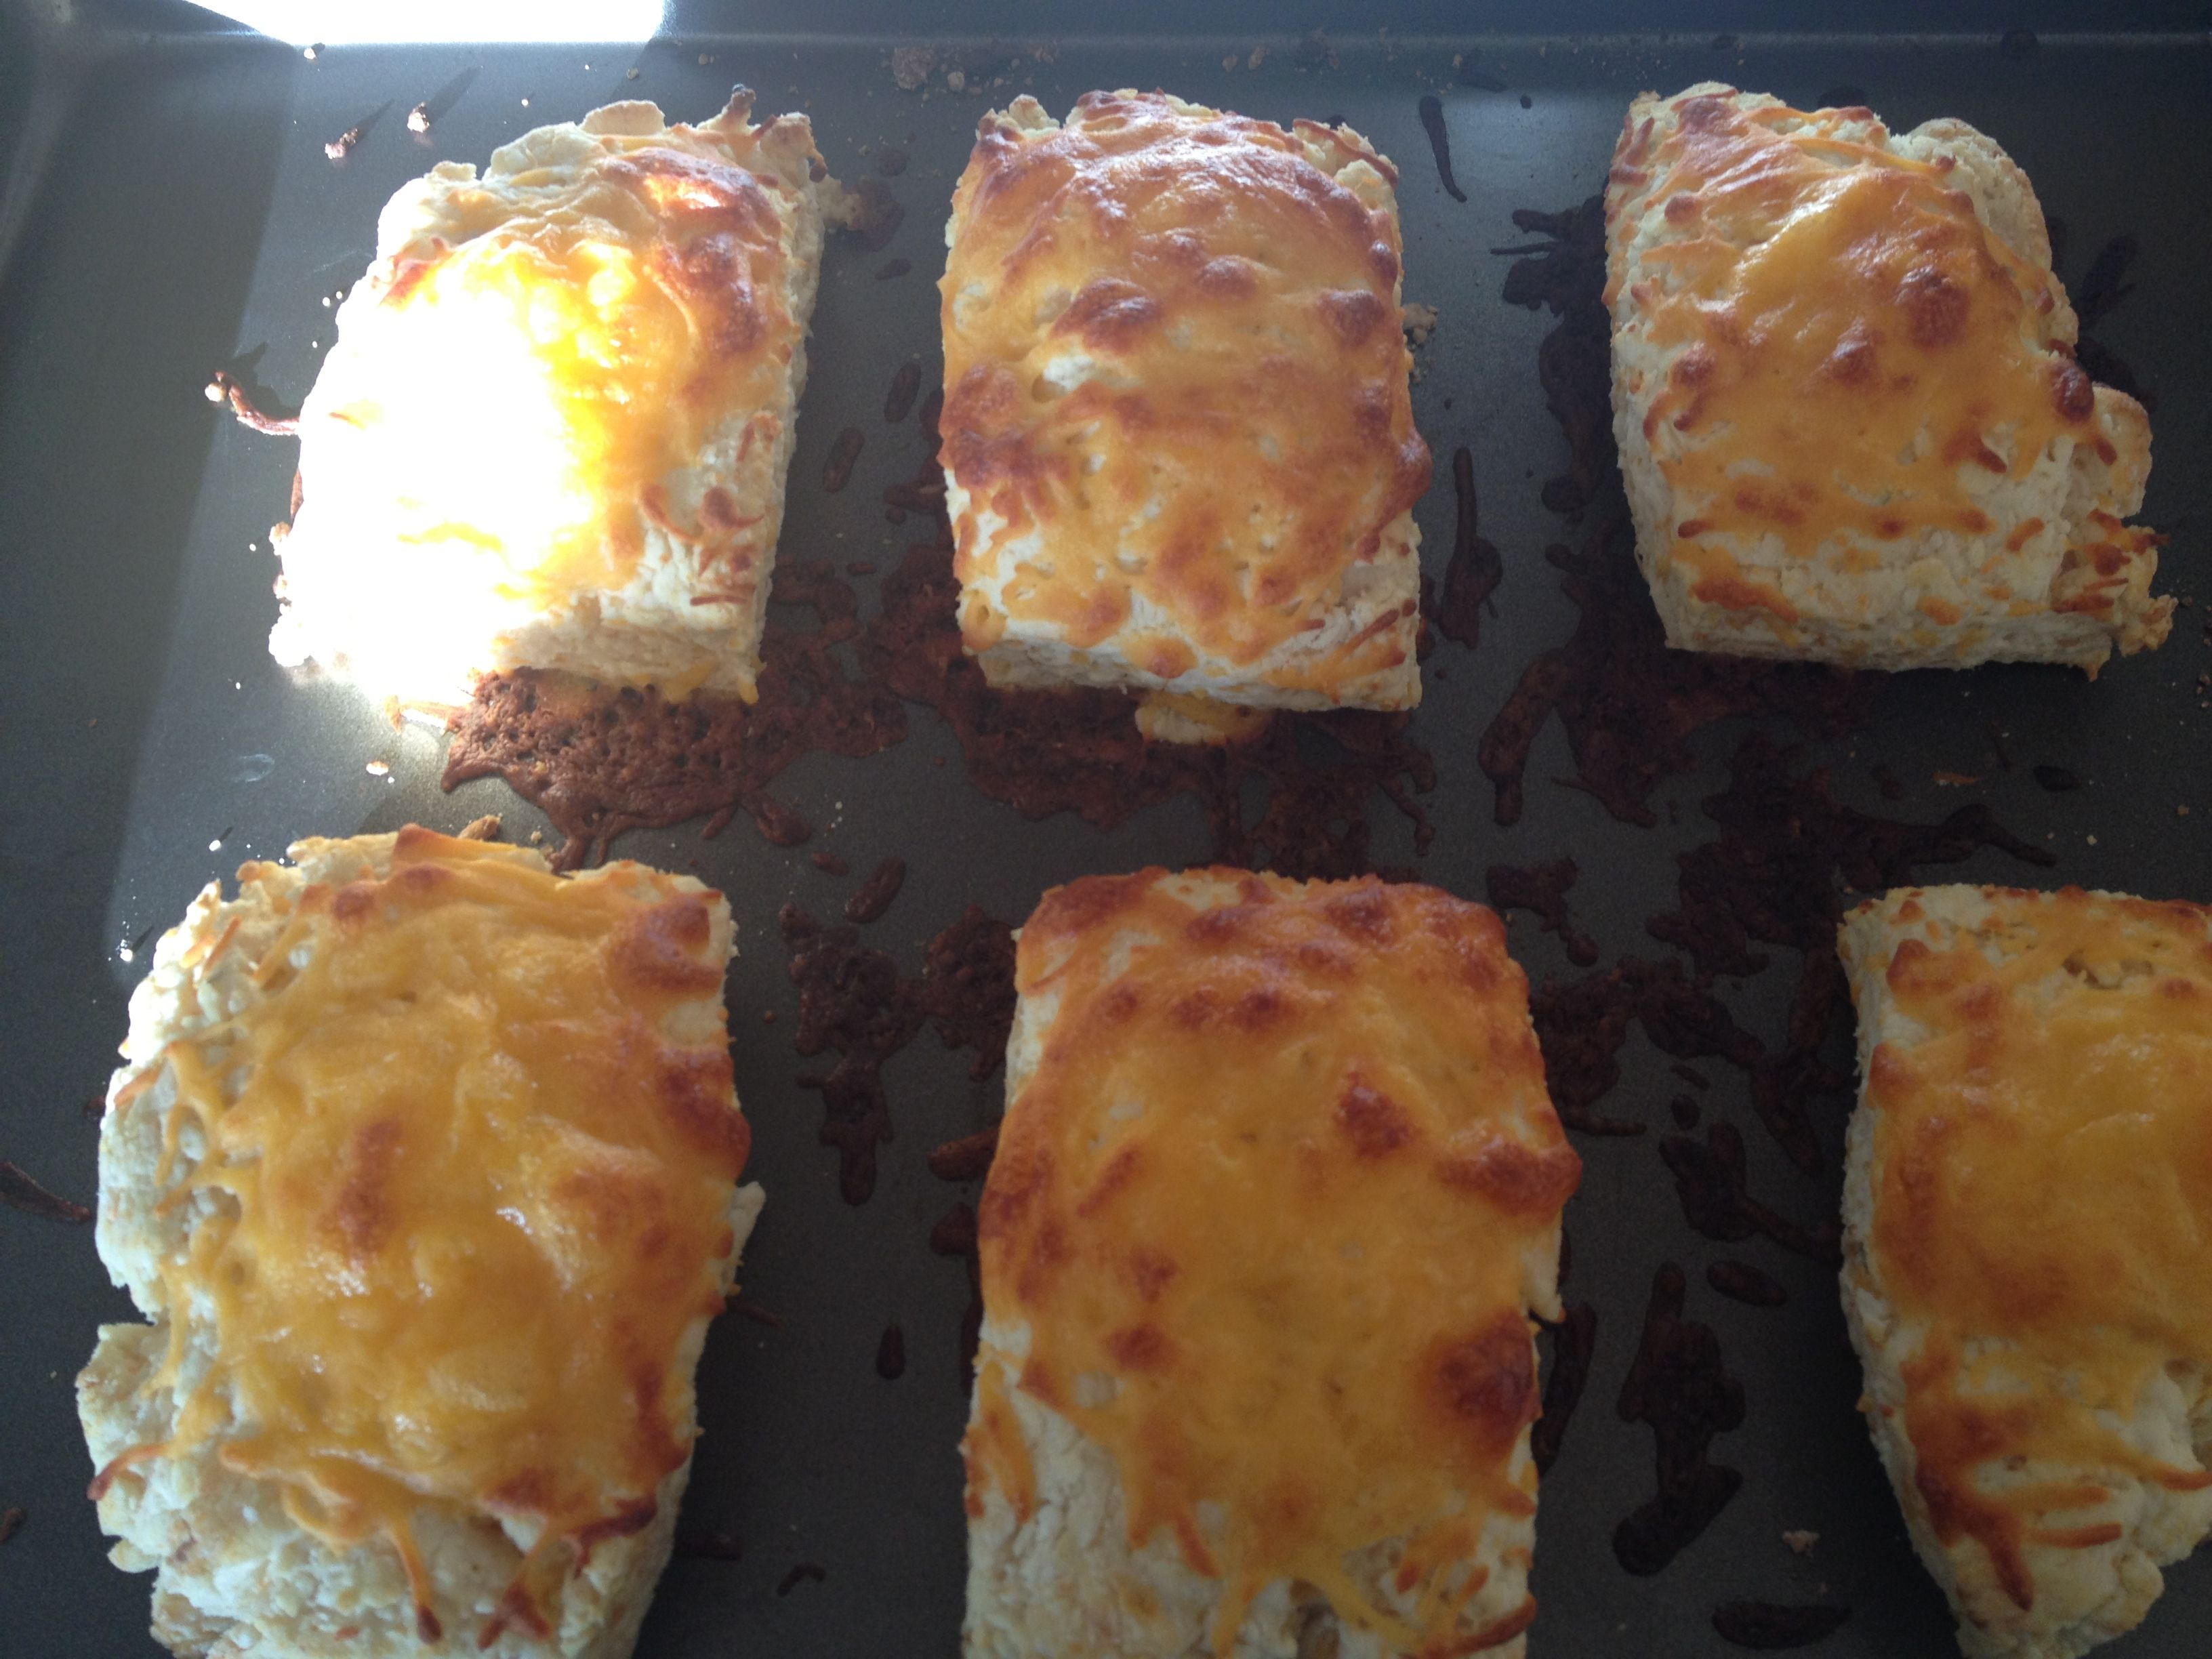 Cheese Scones The Secret To Light Scones With Heavy Cheese Is Self Rising Flour When The Recipe Calls For Plain Flour Self Rising Flour Cheese Scones Recipes